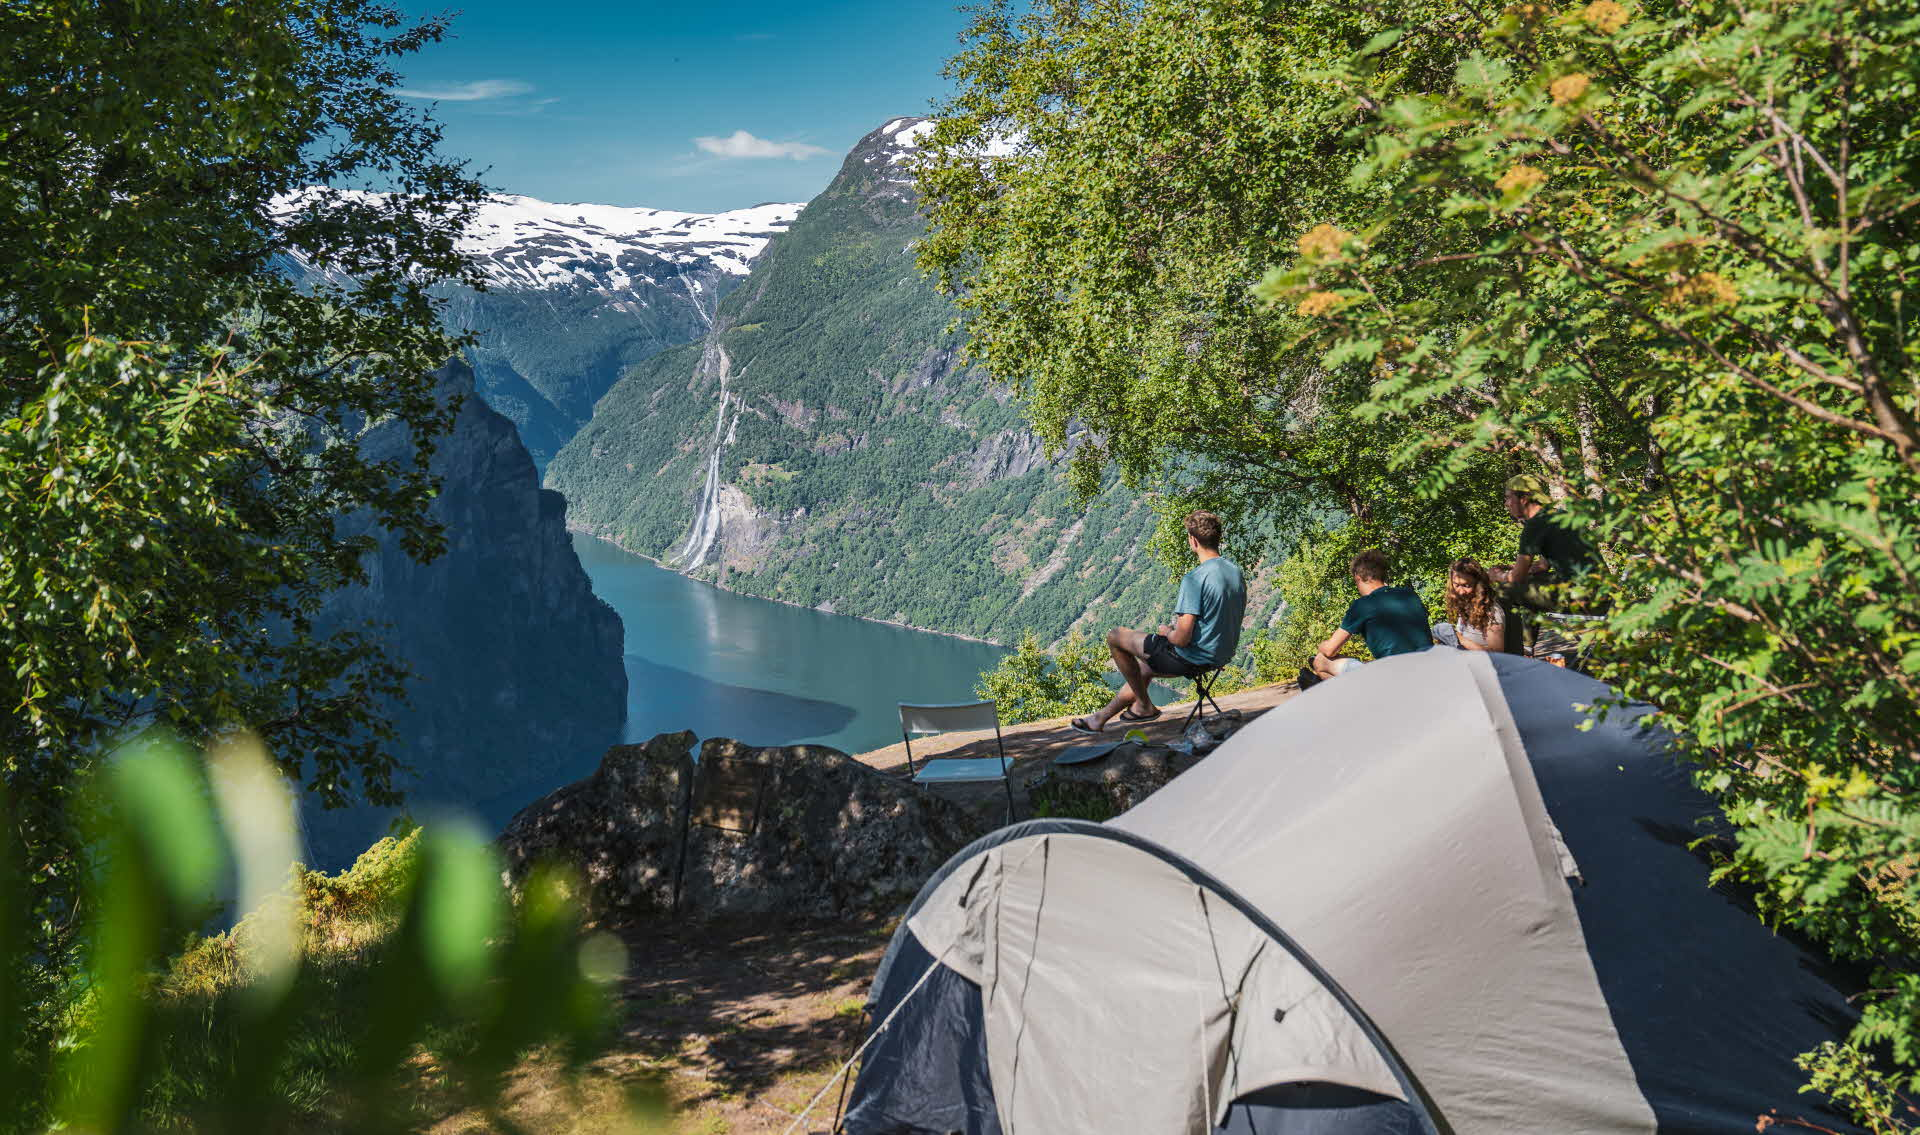 A tent and four campers on a cliff above Geirangerfjord